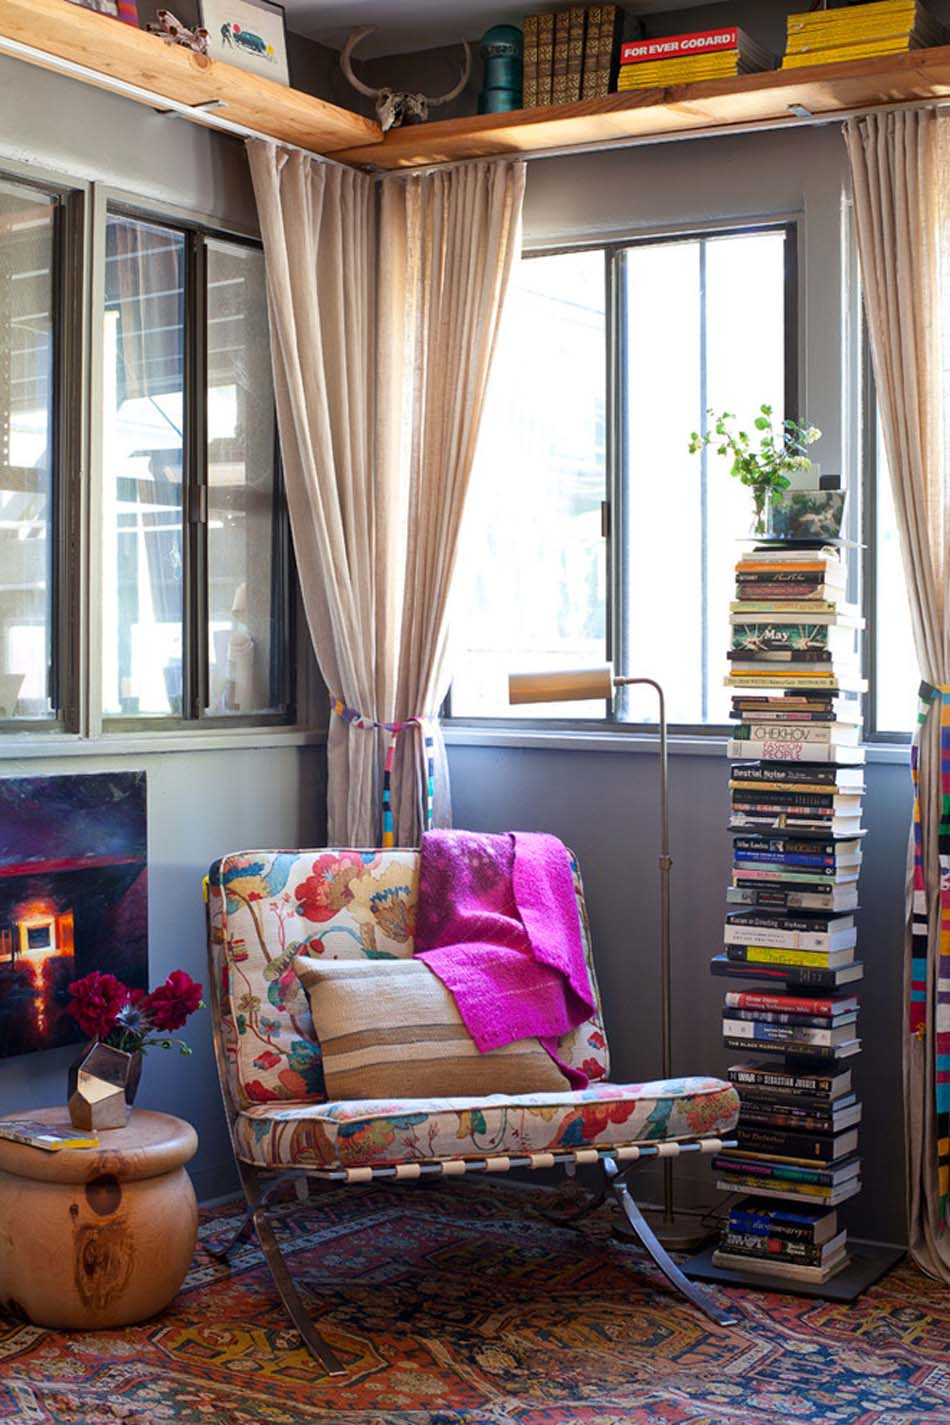 Home Design Ideas Book: 18 Unique Reading Nook Design Ideas